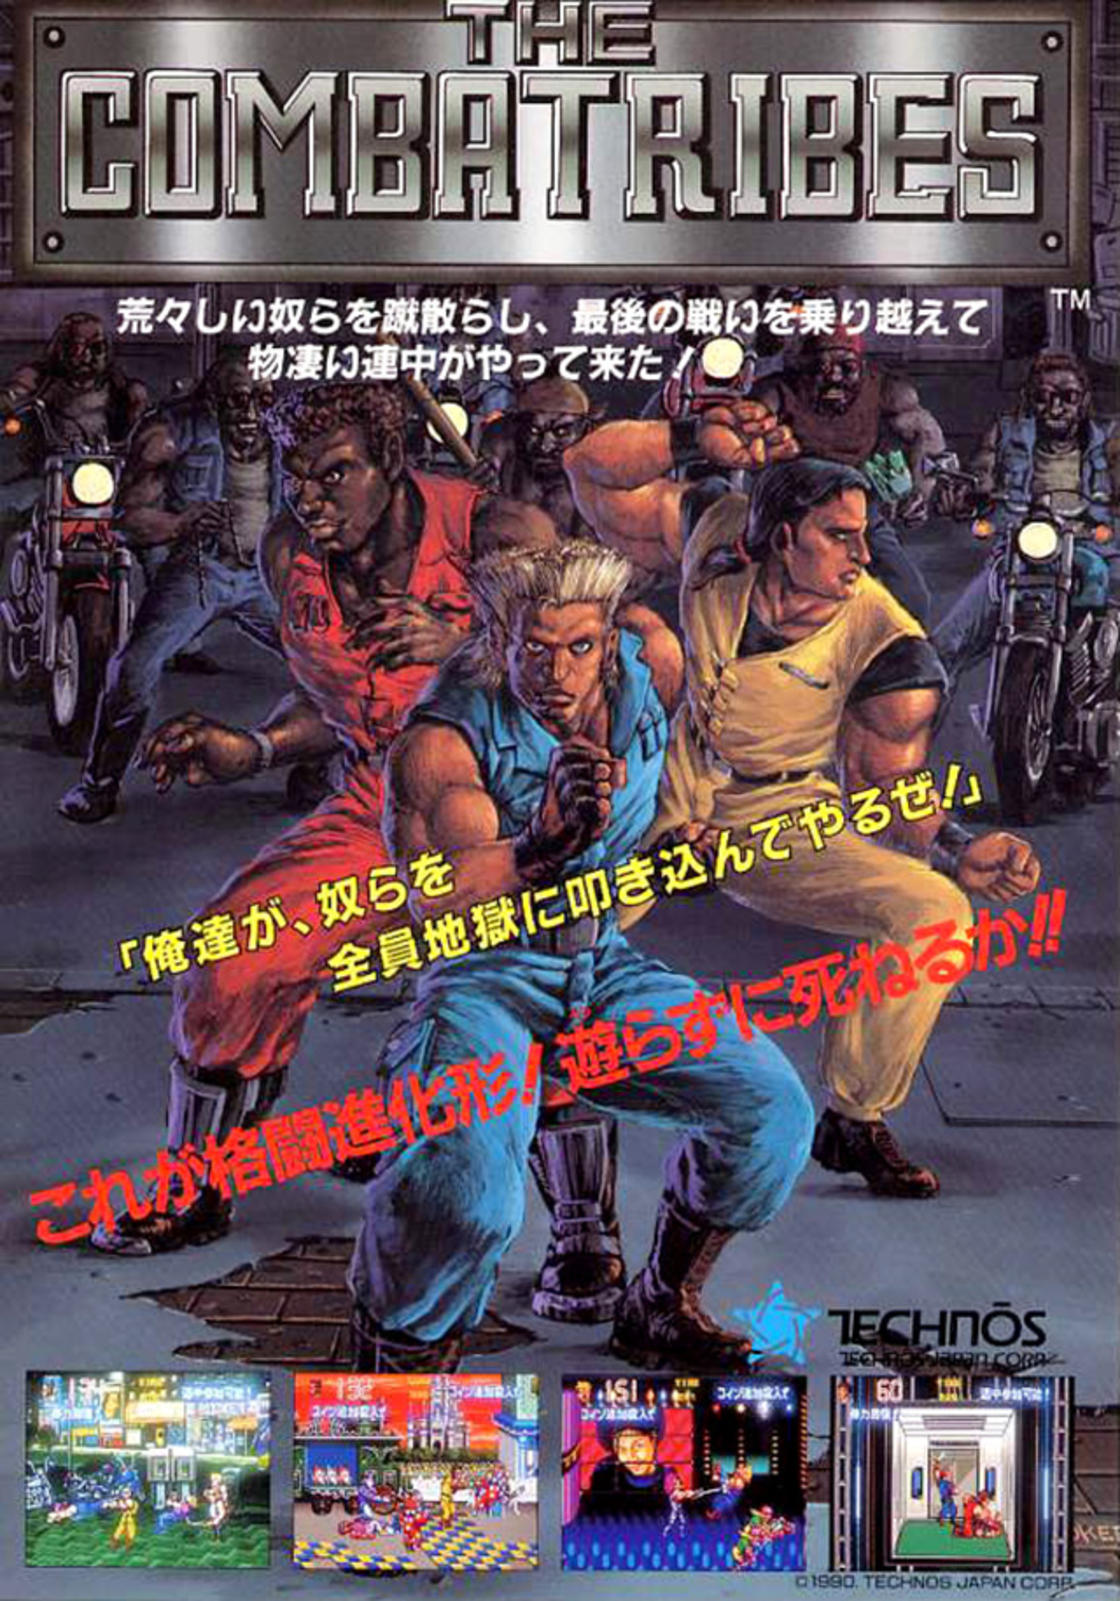 publicites-japonaises-jeux-video-1980-21.jpg